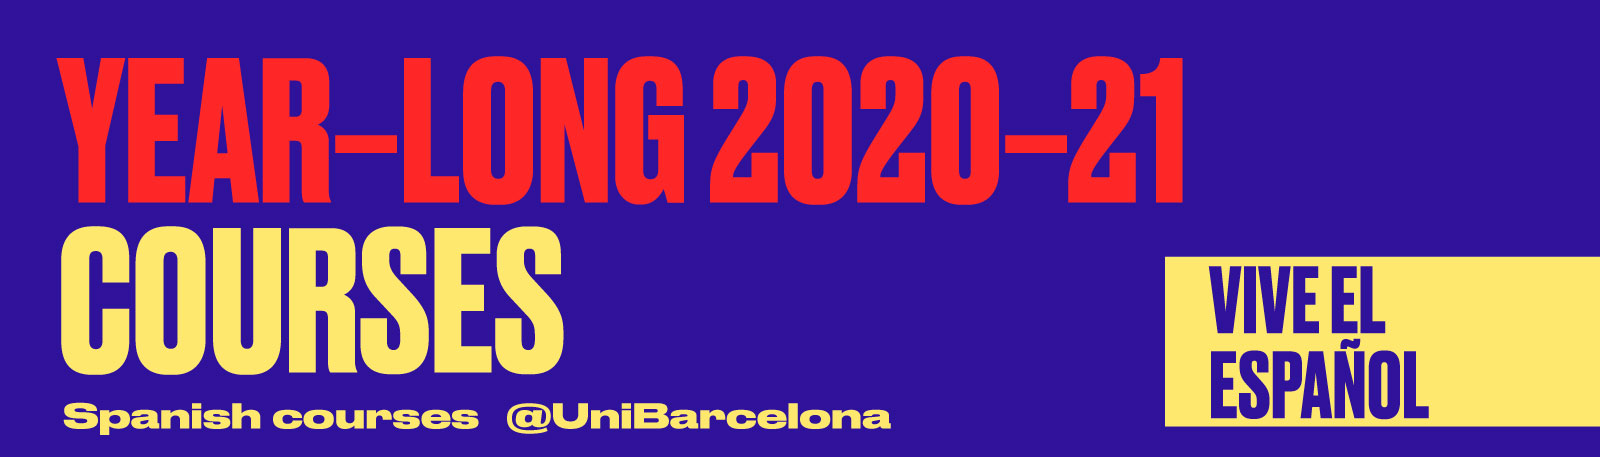 SPANIFY - Year-Long 2020-21 Courses